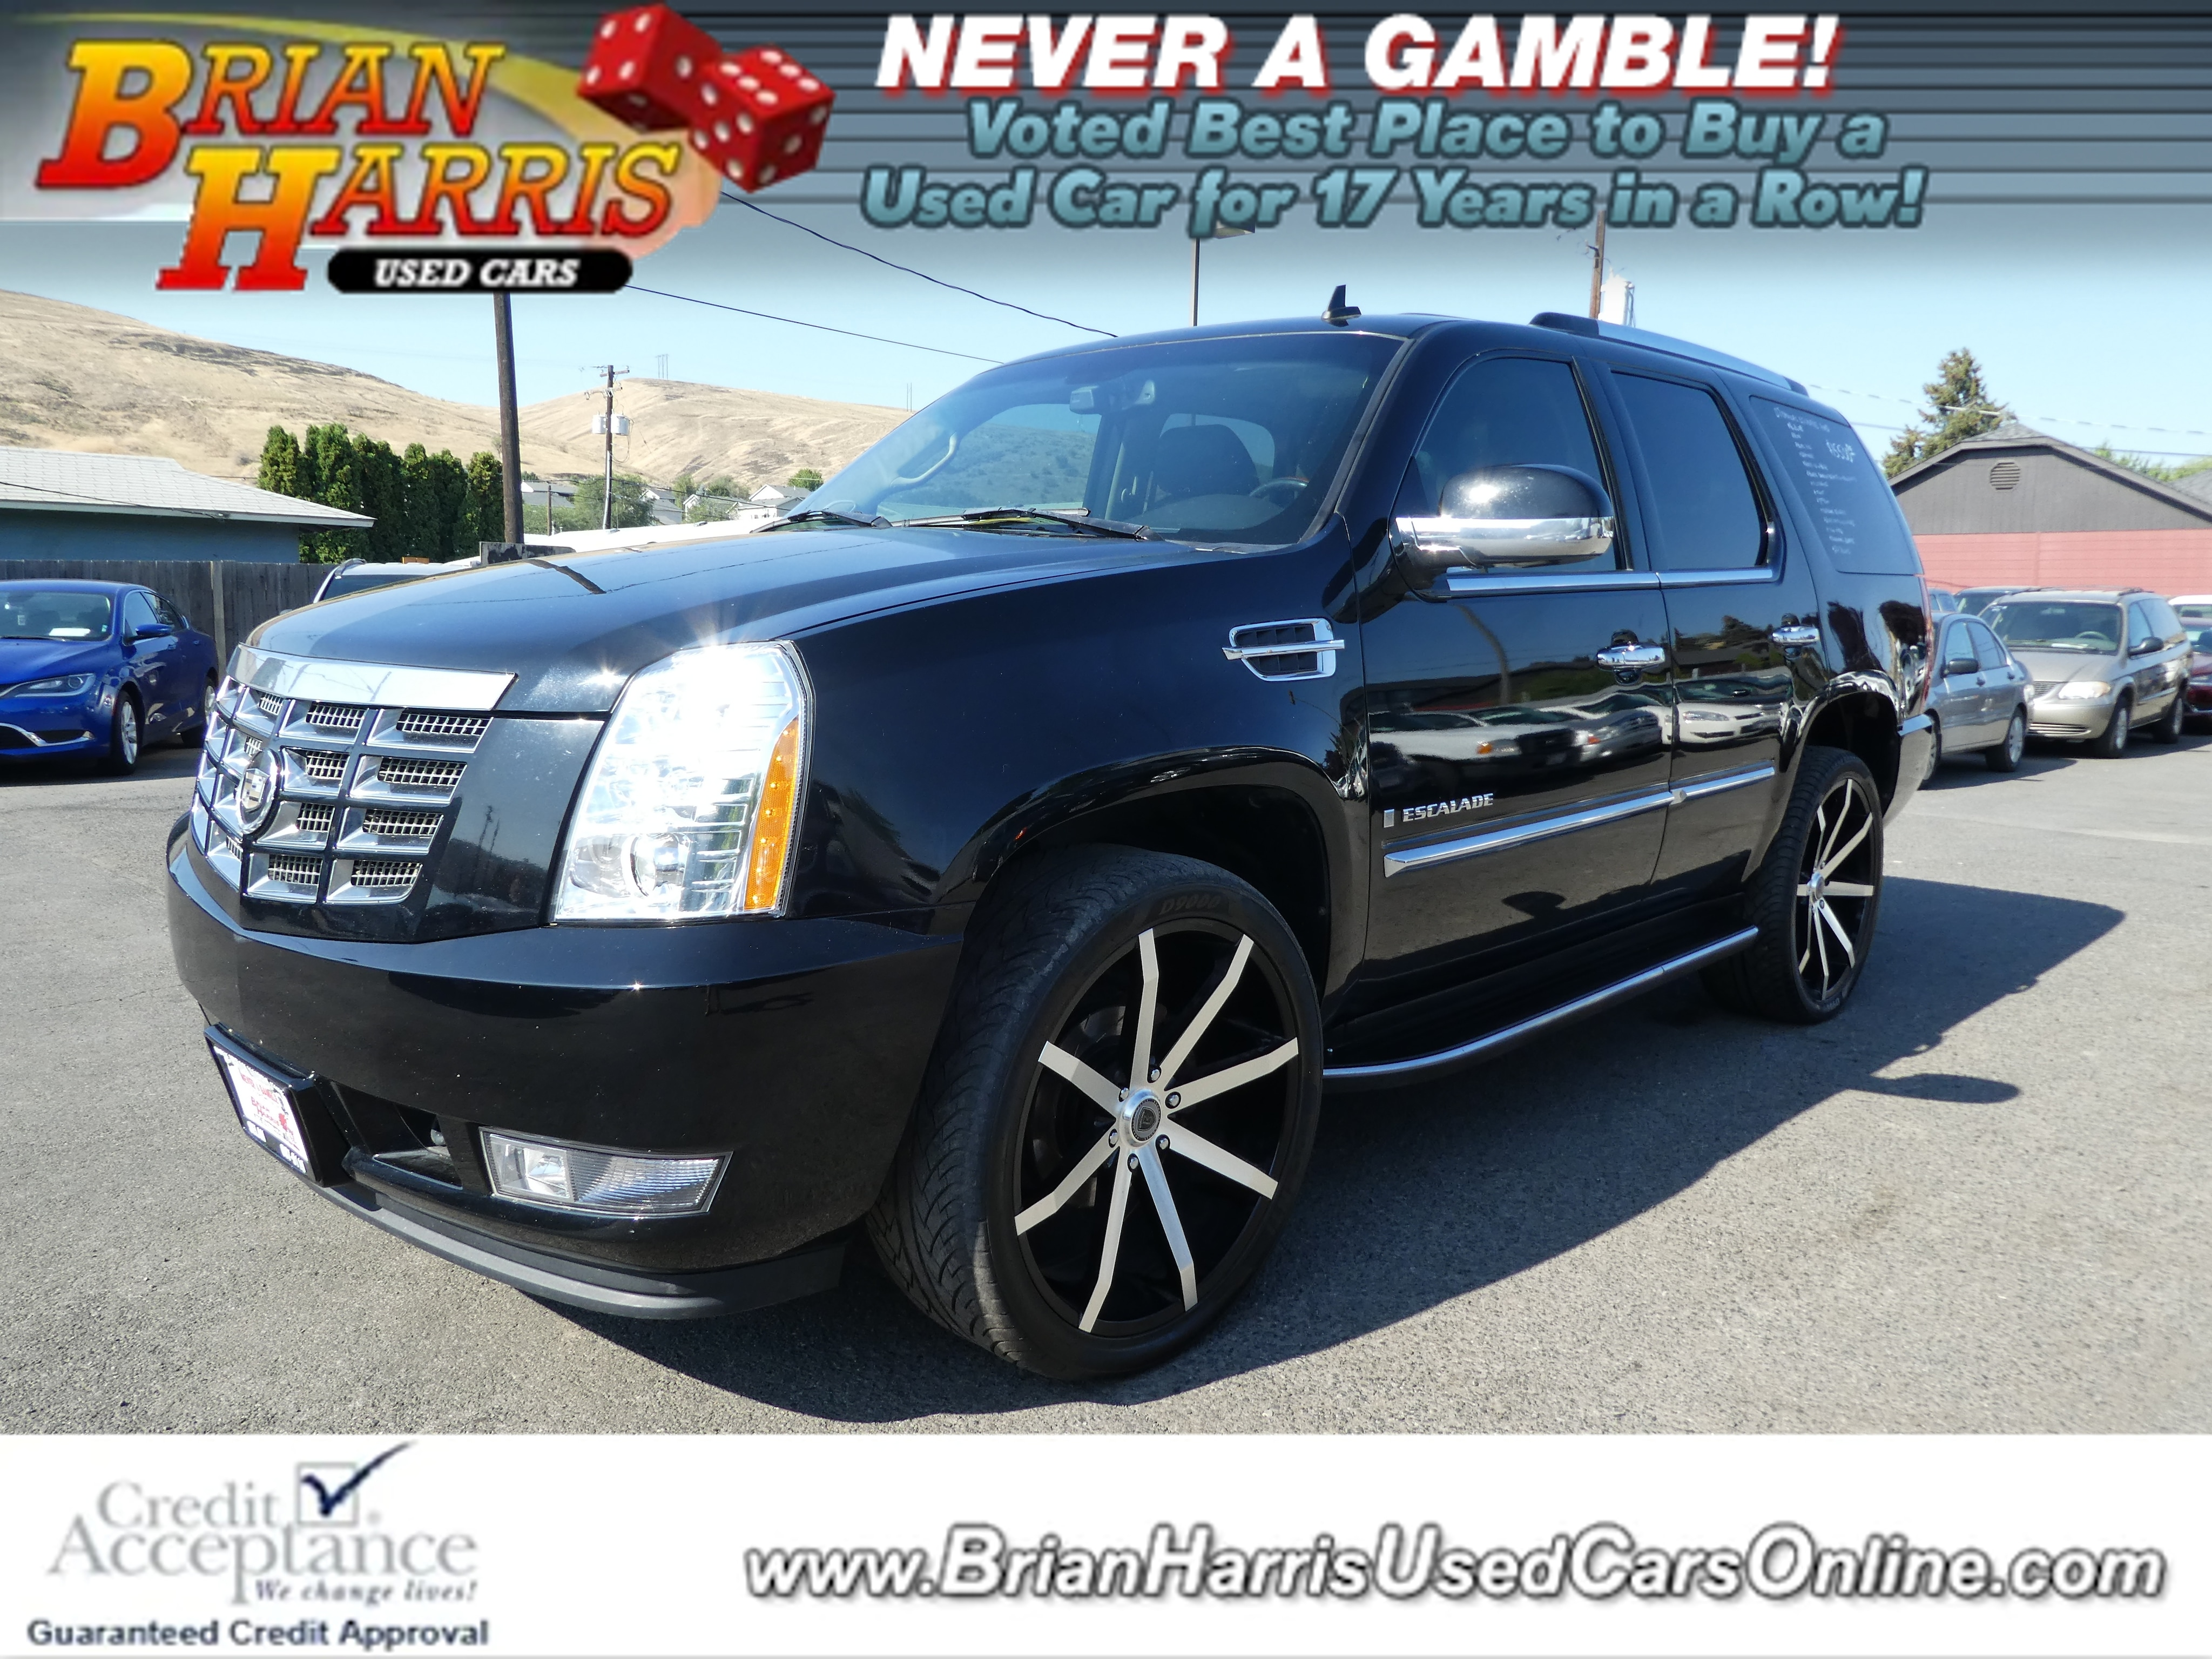 Used 2007 Cadillac Escalade For Sale At Brian Harris Cars Vin Rhbrianharrisusedcarsonline: 2007 Cadillac Escalade Air Ride Pressor Location On Chevy Ignition At Gmaili.net